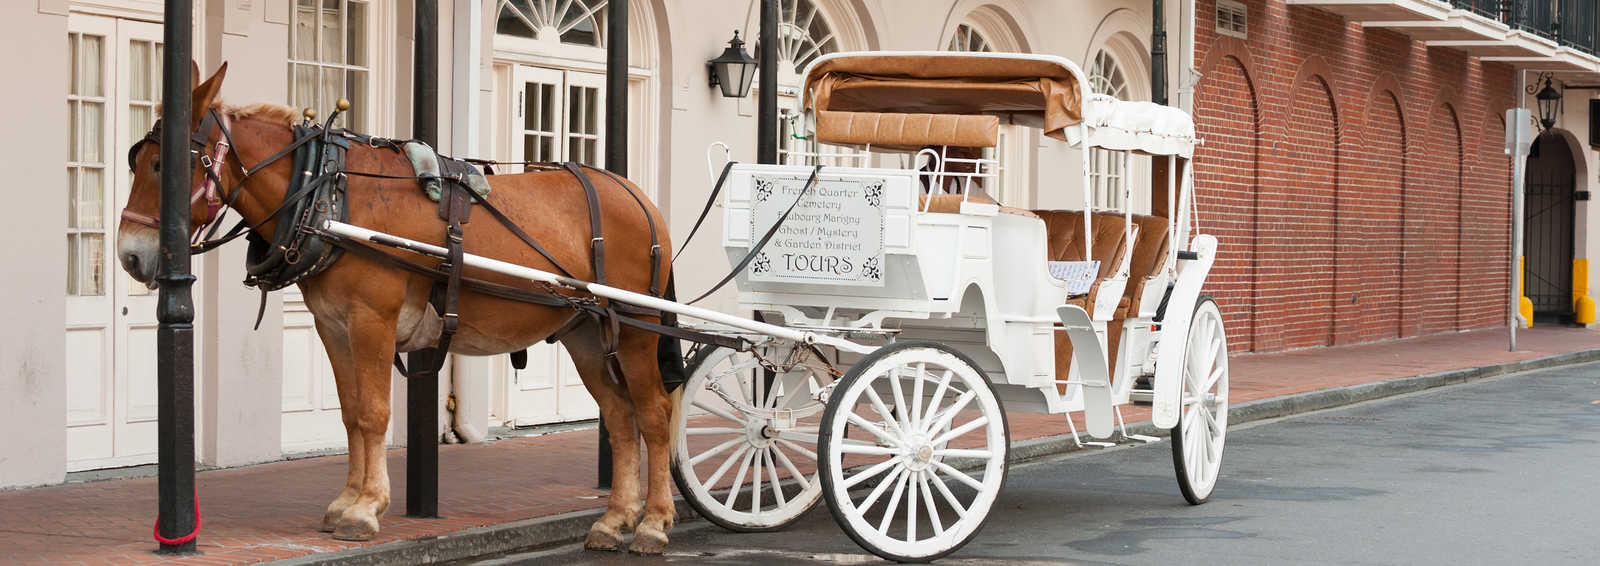 Horse and Cart French quarter, New Orleans